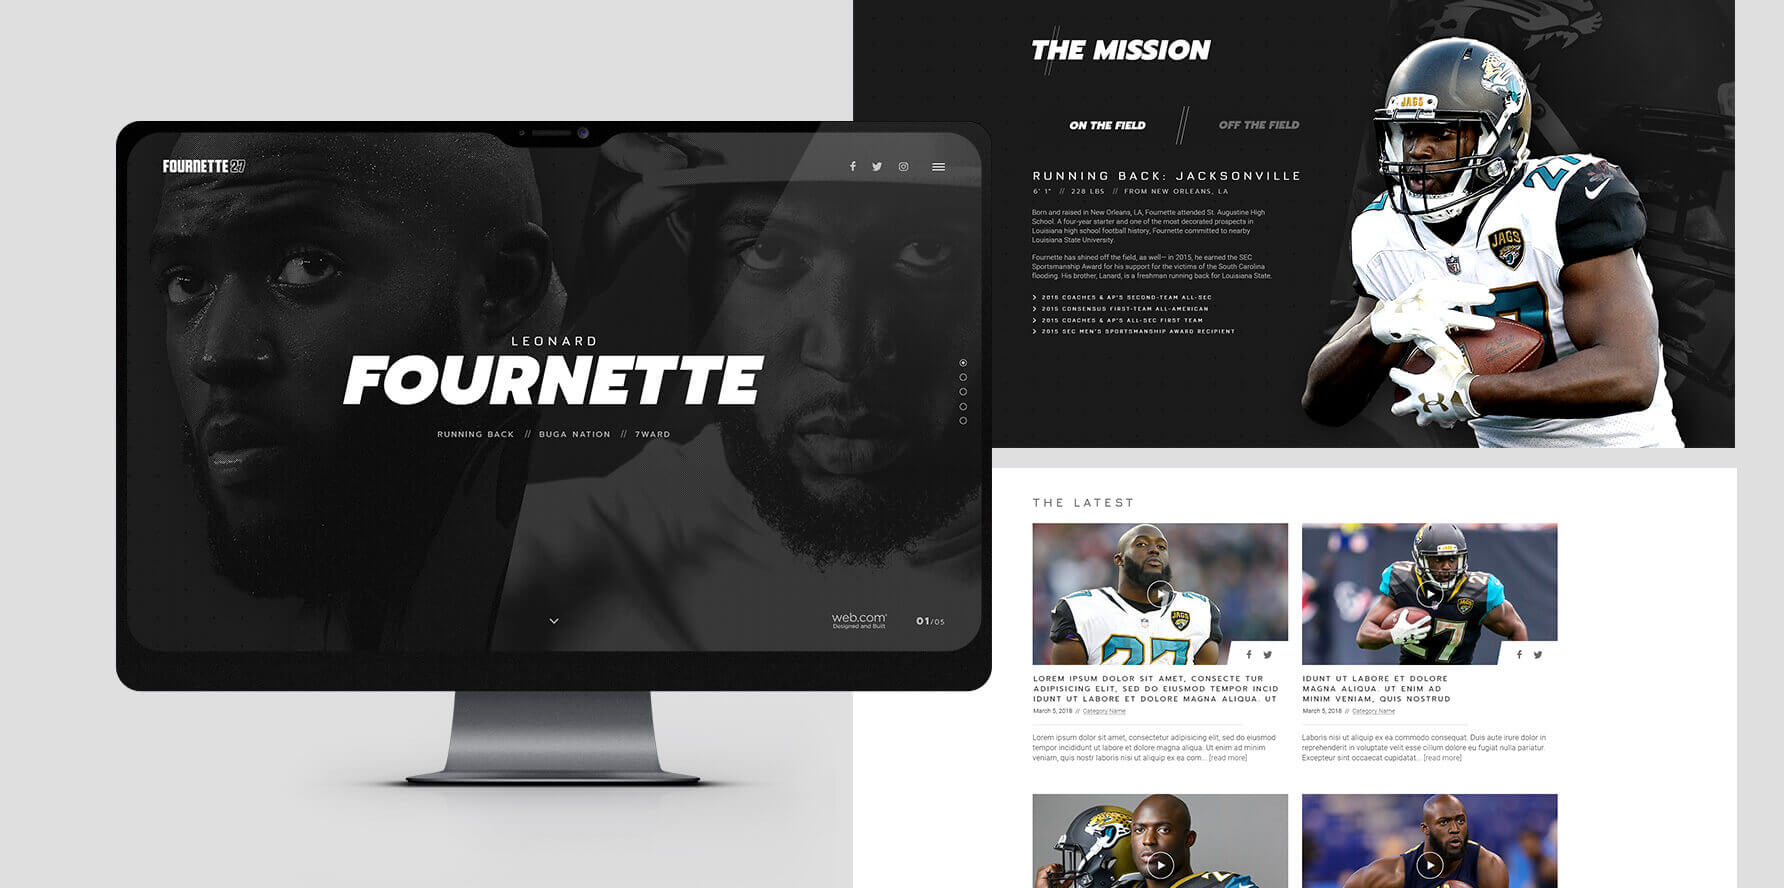 Leonard Fournette Official Website - Desktop